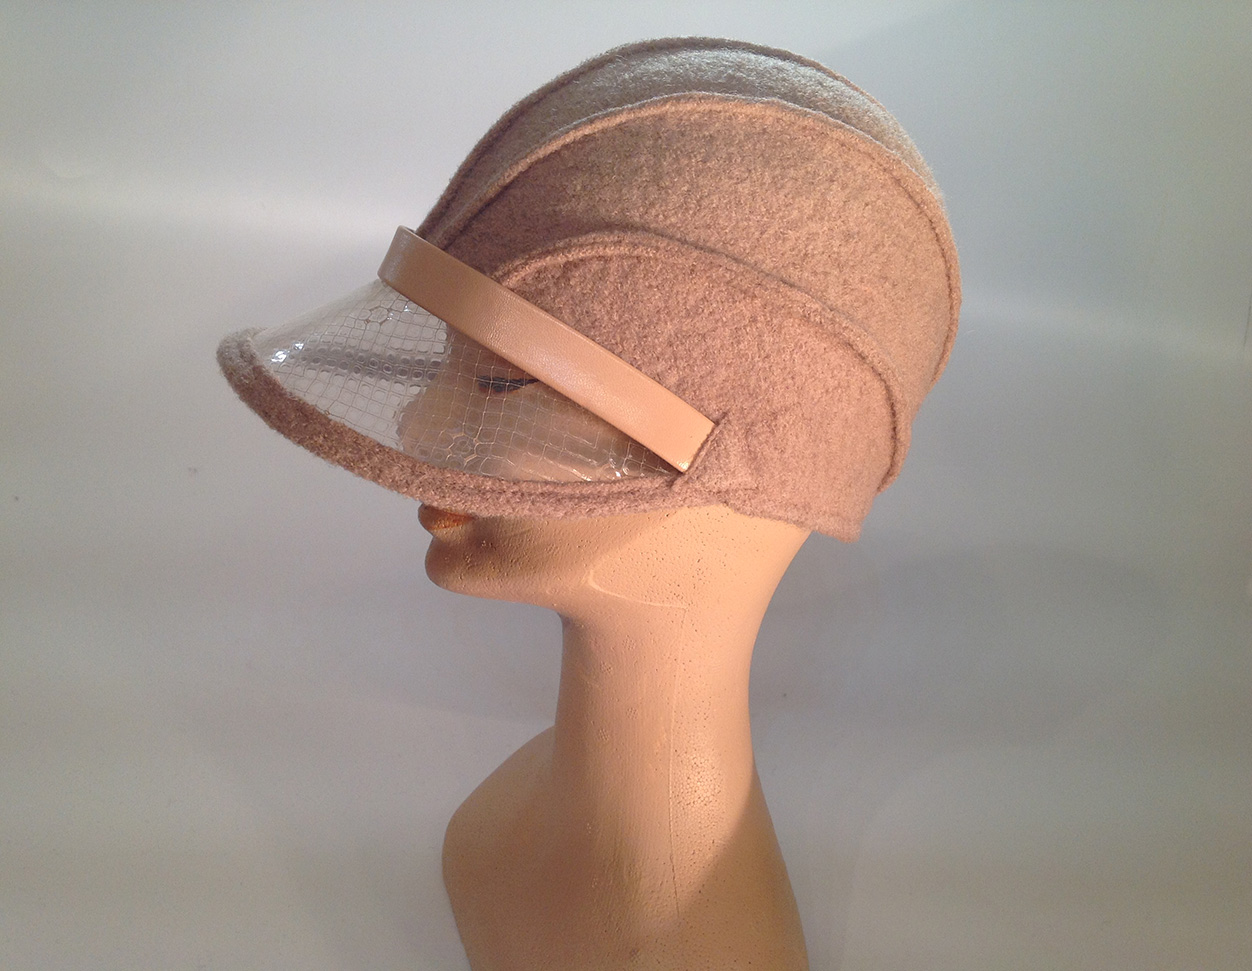 a7ff1d02a07 boiled wool cloche with plastic visor veil and leather applications - side  view